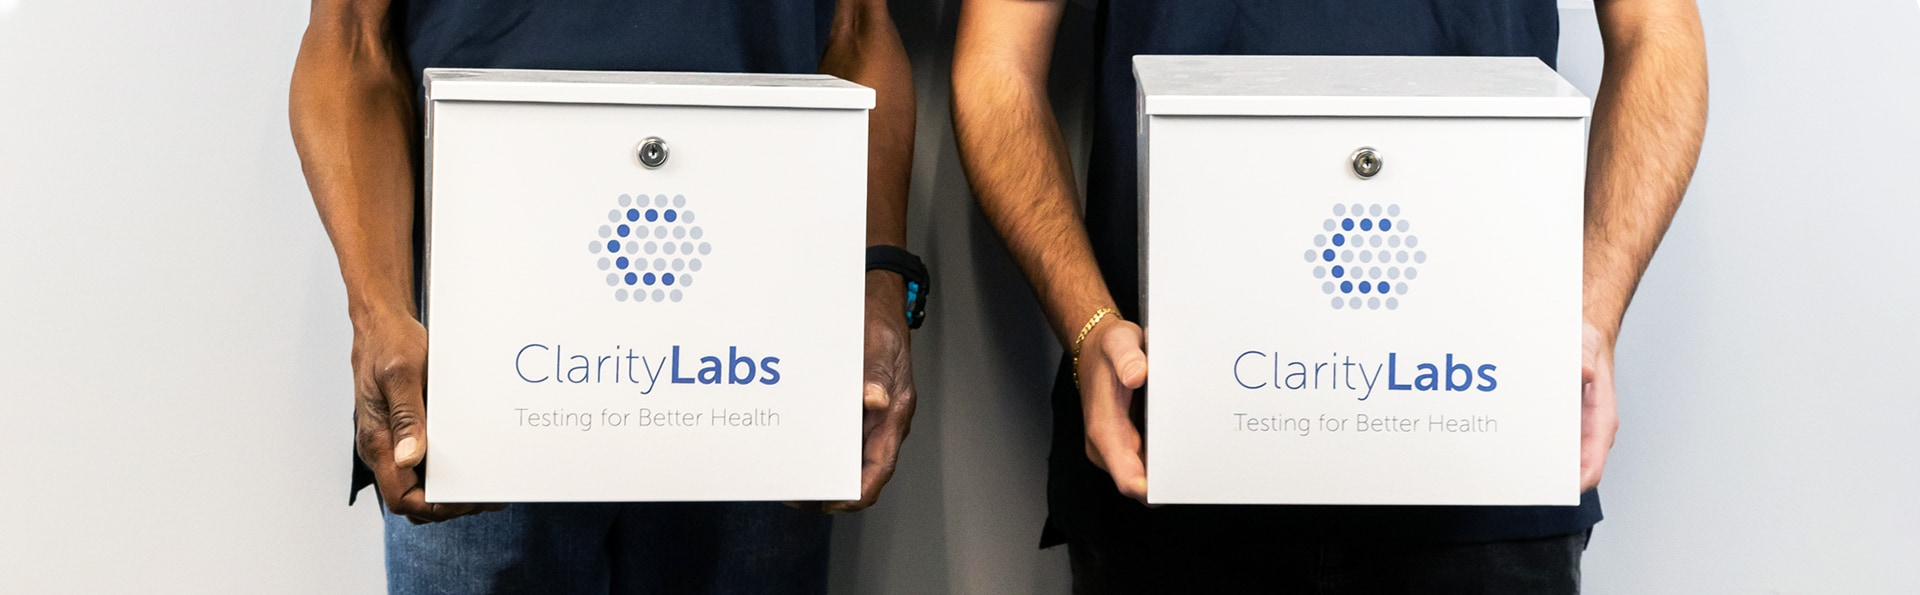 ClarityLabs Courier Boxes